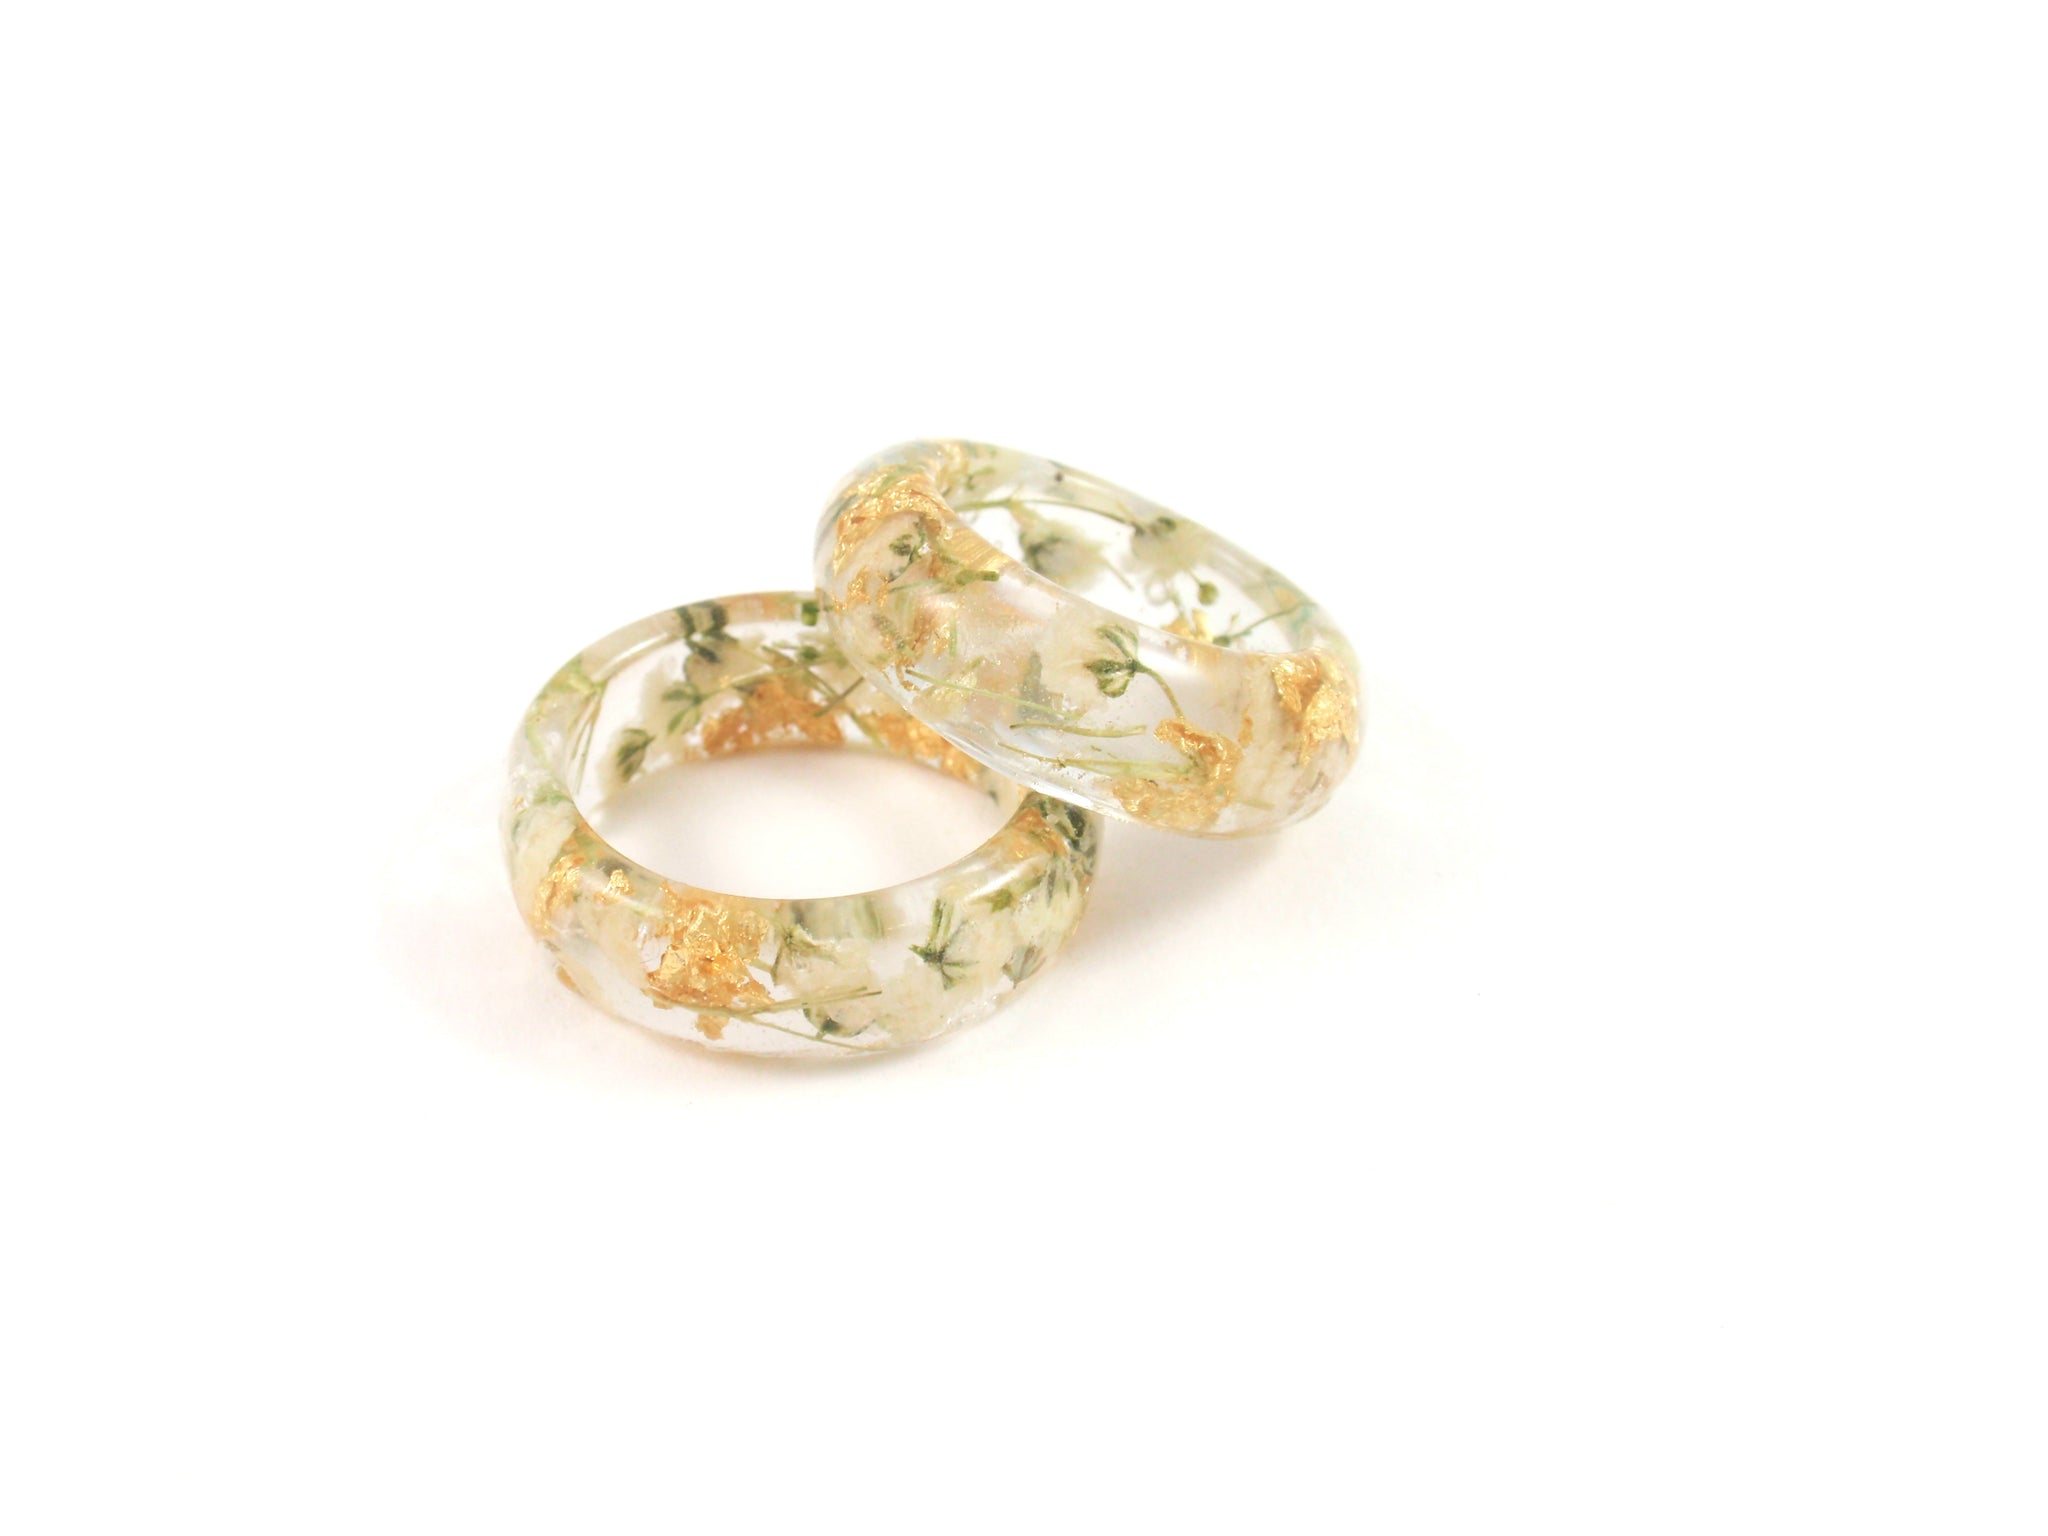 Nature ring Gold flakes and white flowers, Real Flower resin ring